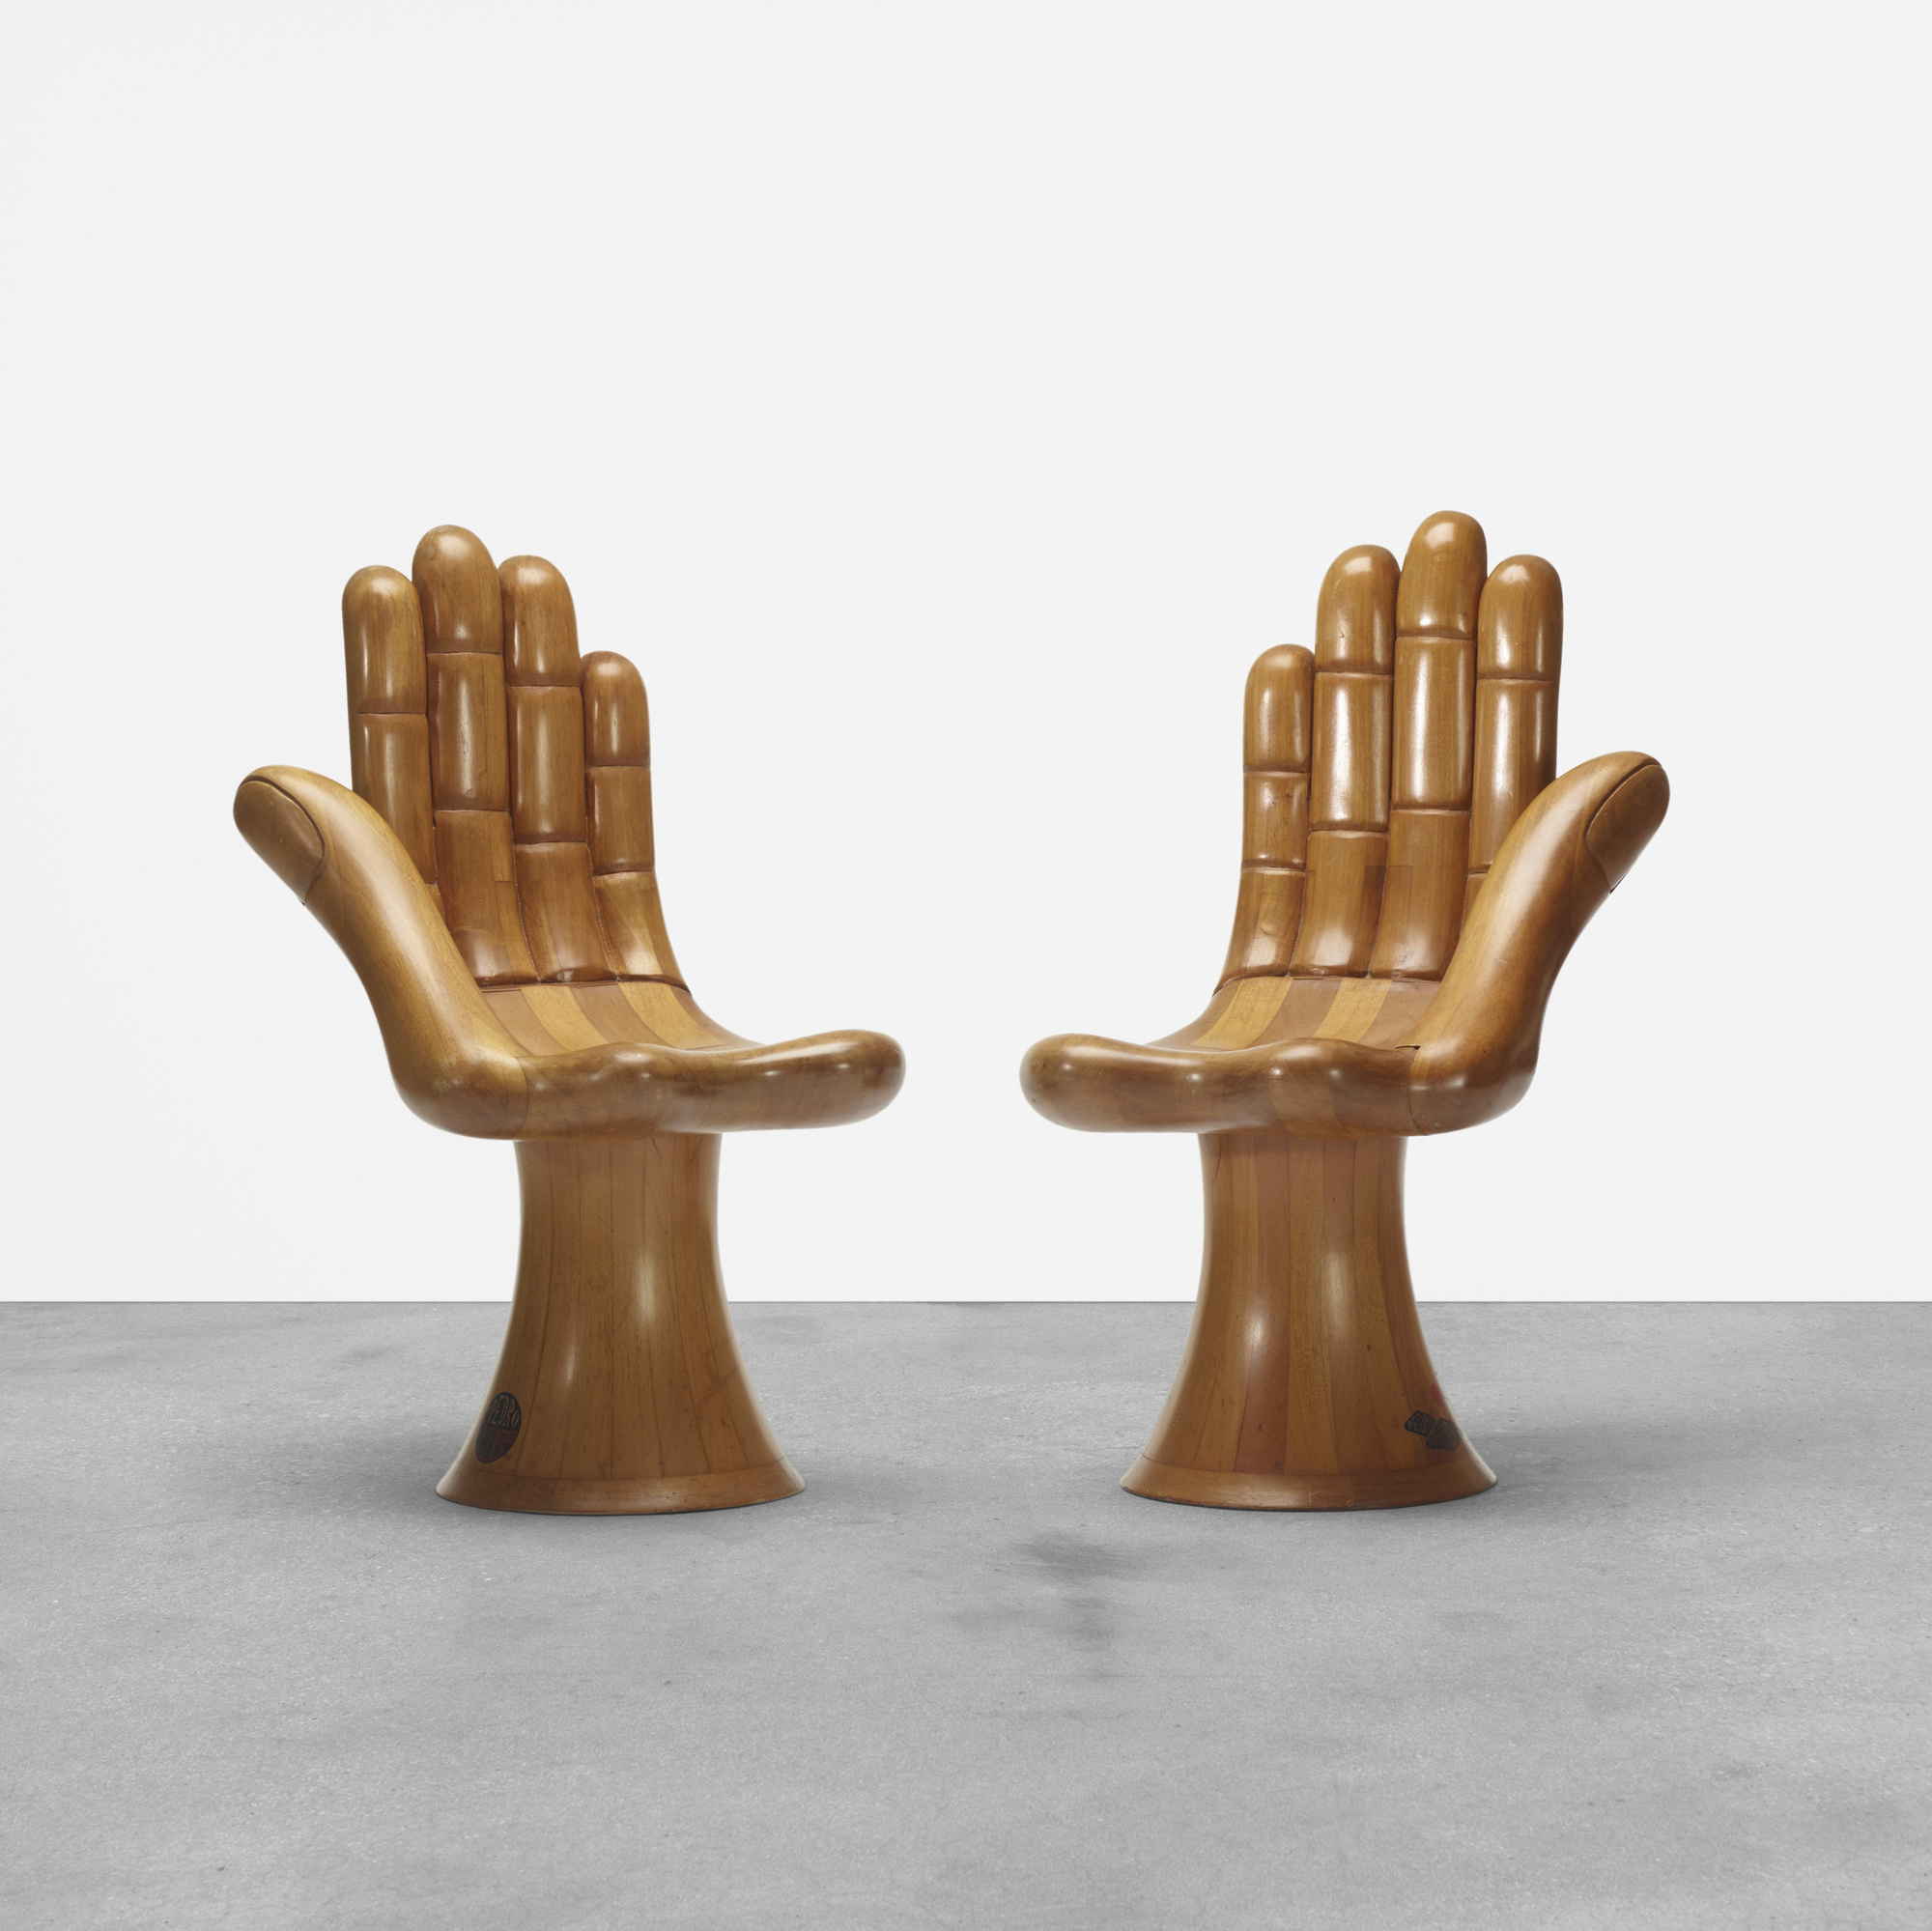 299: Pedro Friedeberg / early and rare Hand chairs, pair (1 of 4)